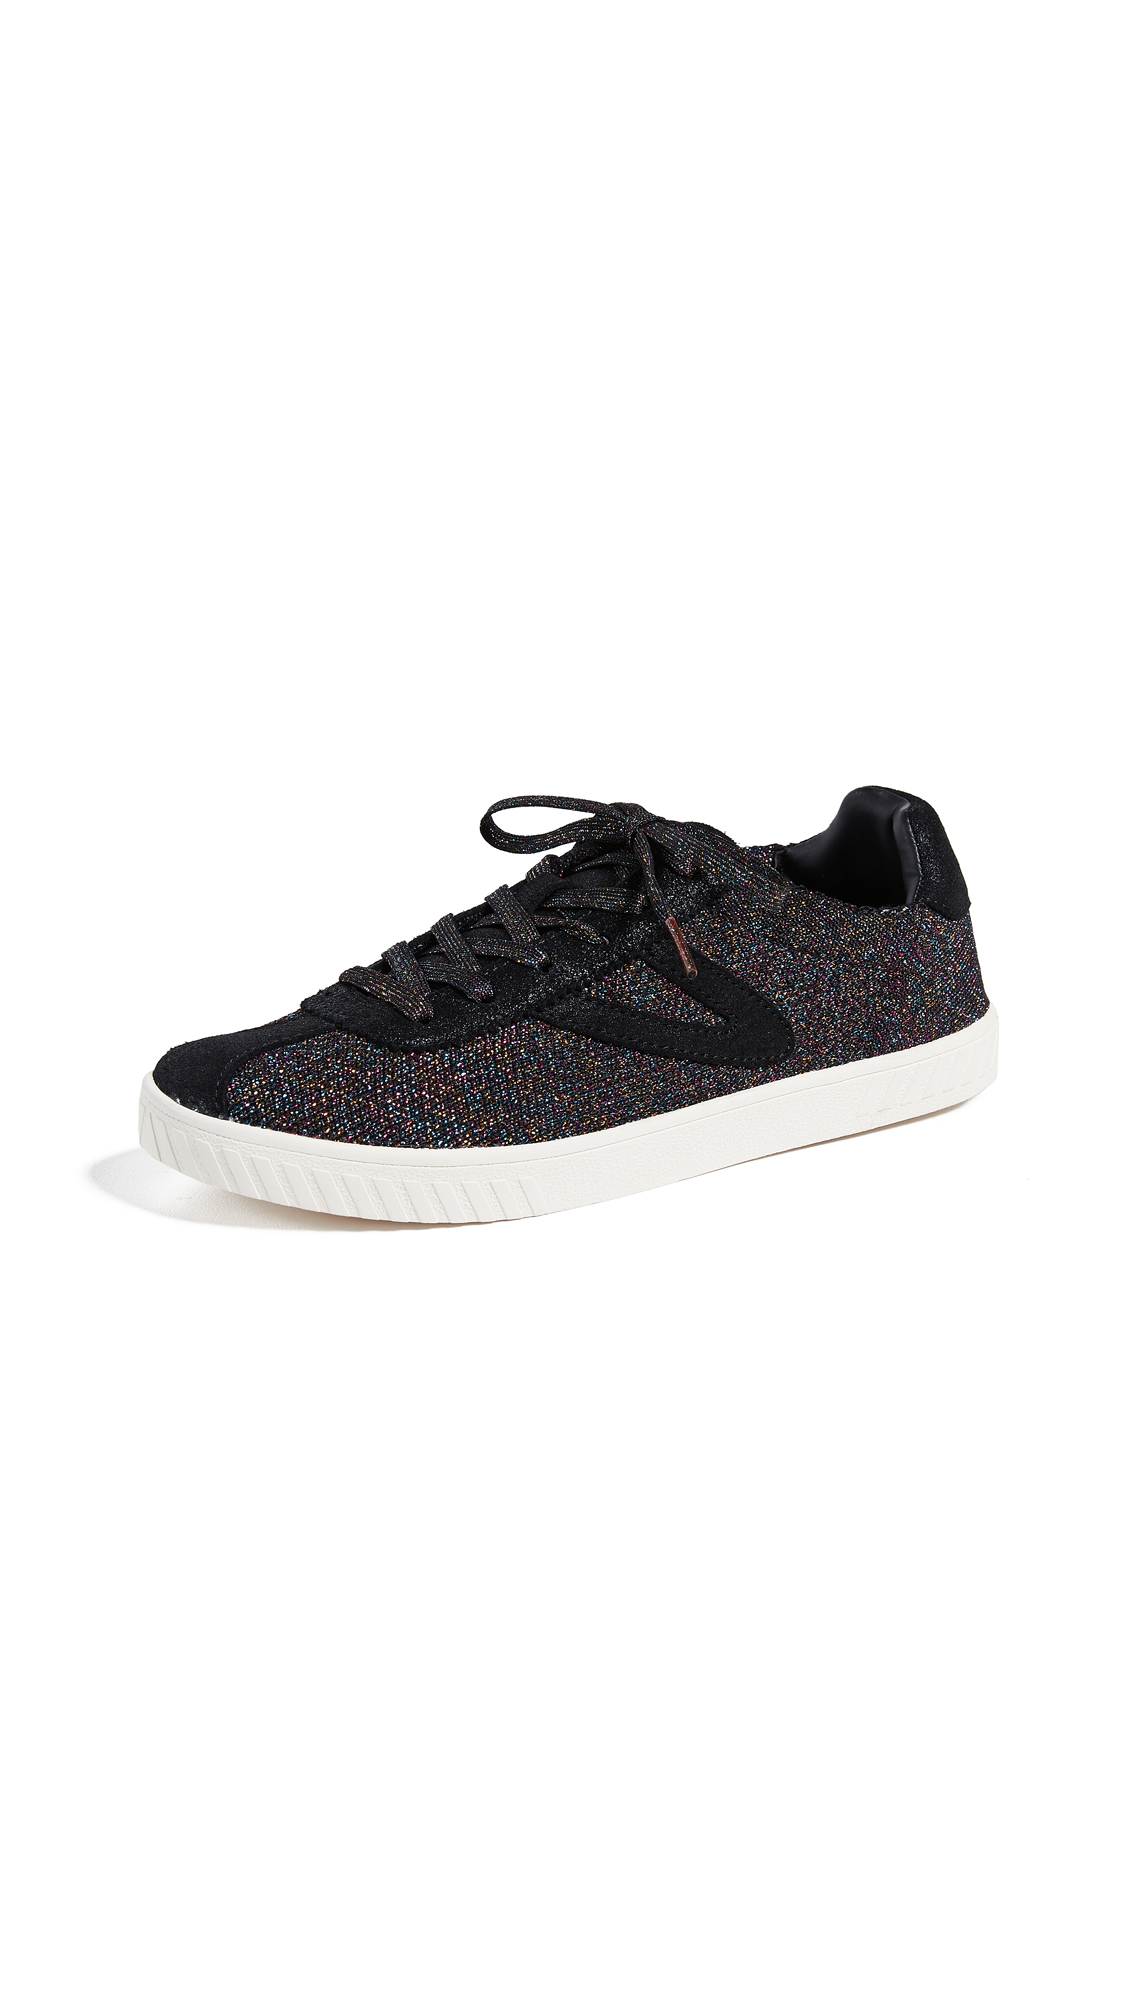 Tretorn Camden Lace Up Glitter Sneakers - Black Multi/Black